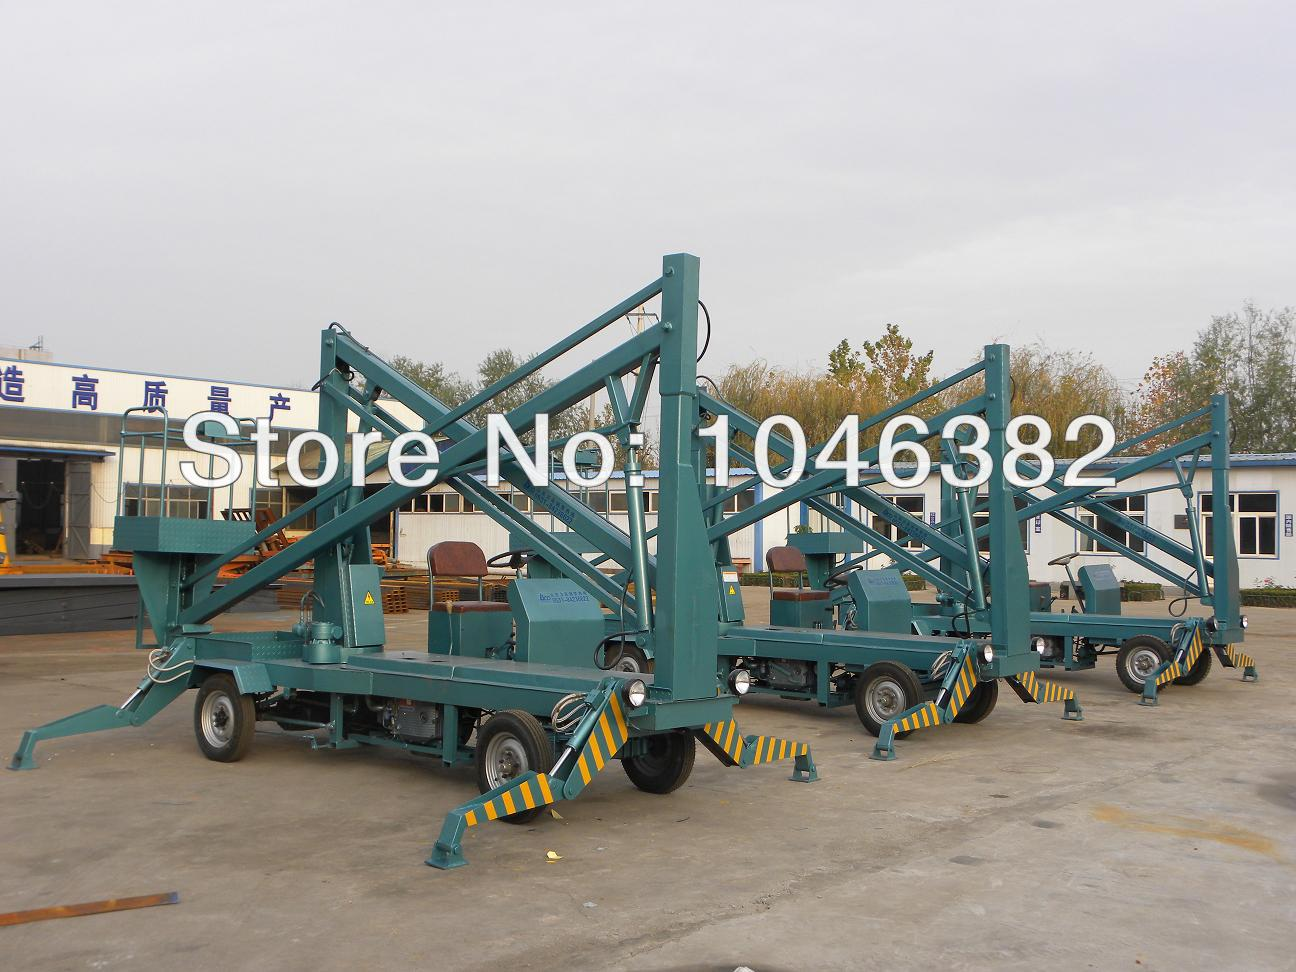 12 Meters Aerial Arm Lift Table(China (Mainland))